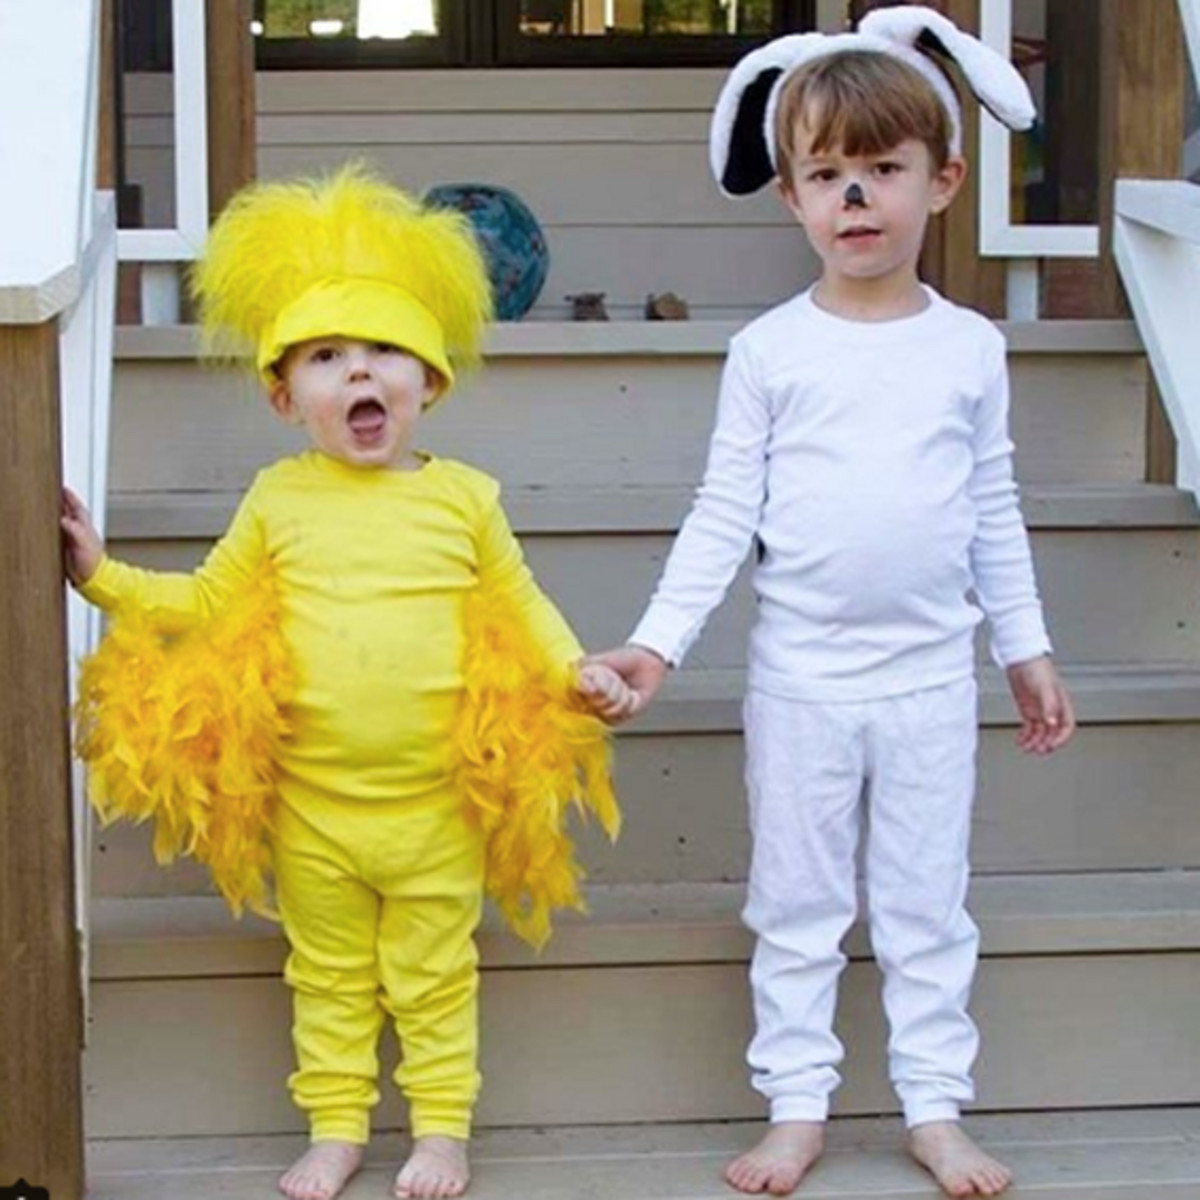 Best ideas about Woodstock Costume DIY . Save or Pin No Sew DIY Snoopy and woodstock Kids Costume Now.